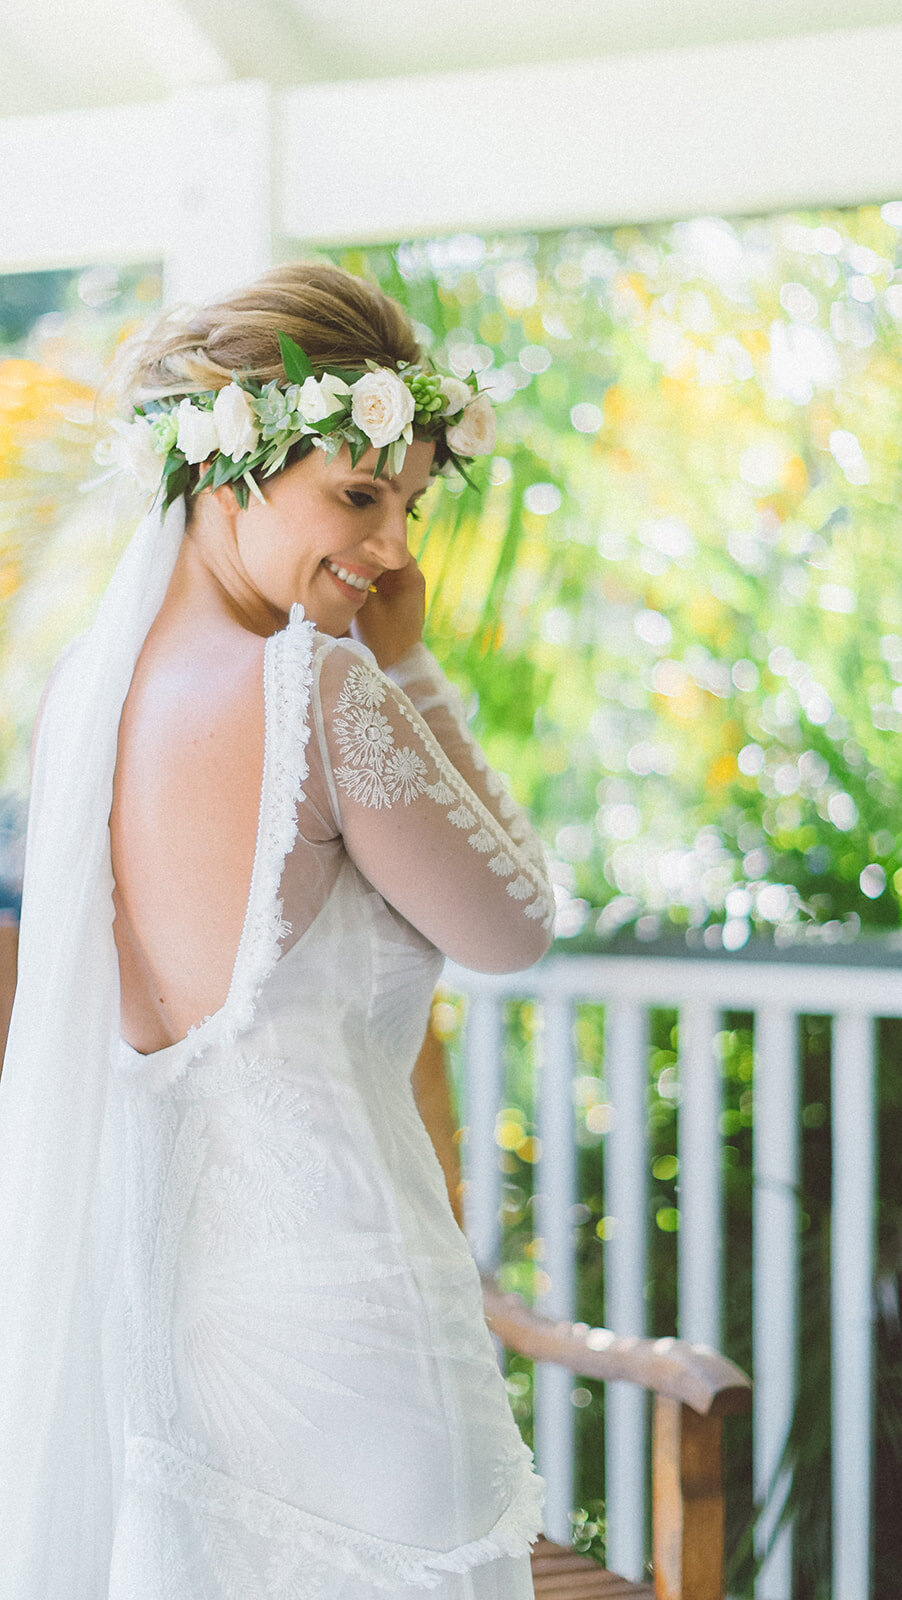 Maui wedding photographer20181126_0118.jpg